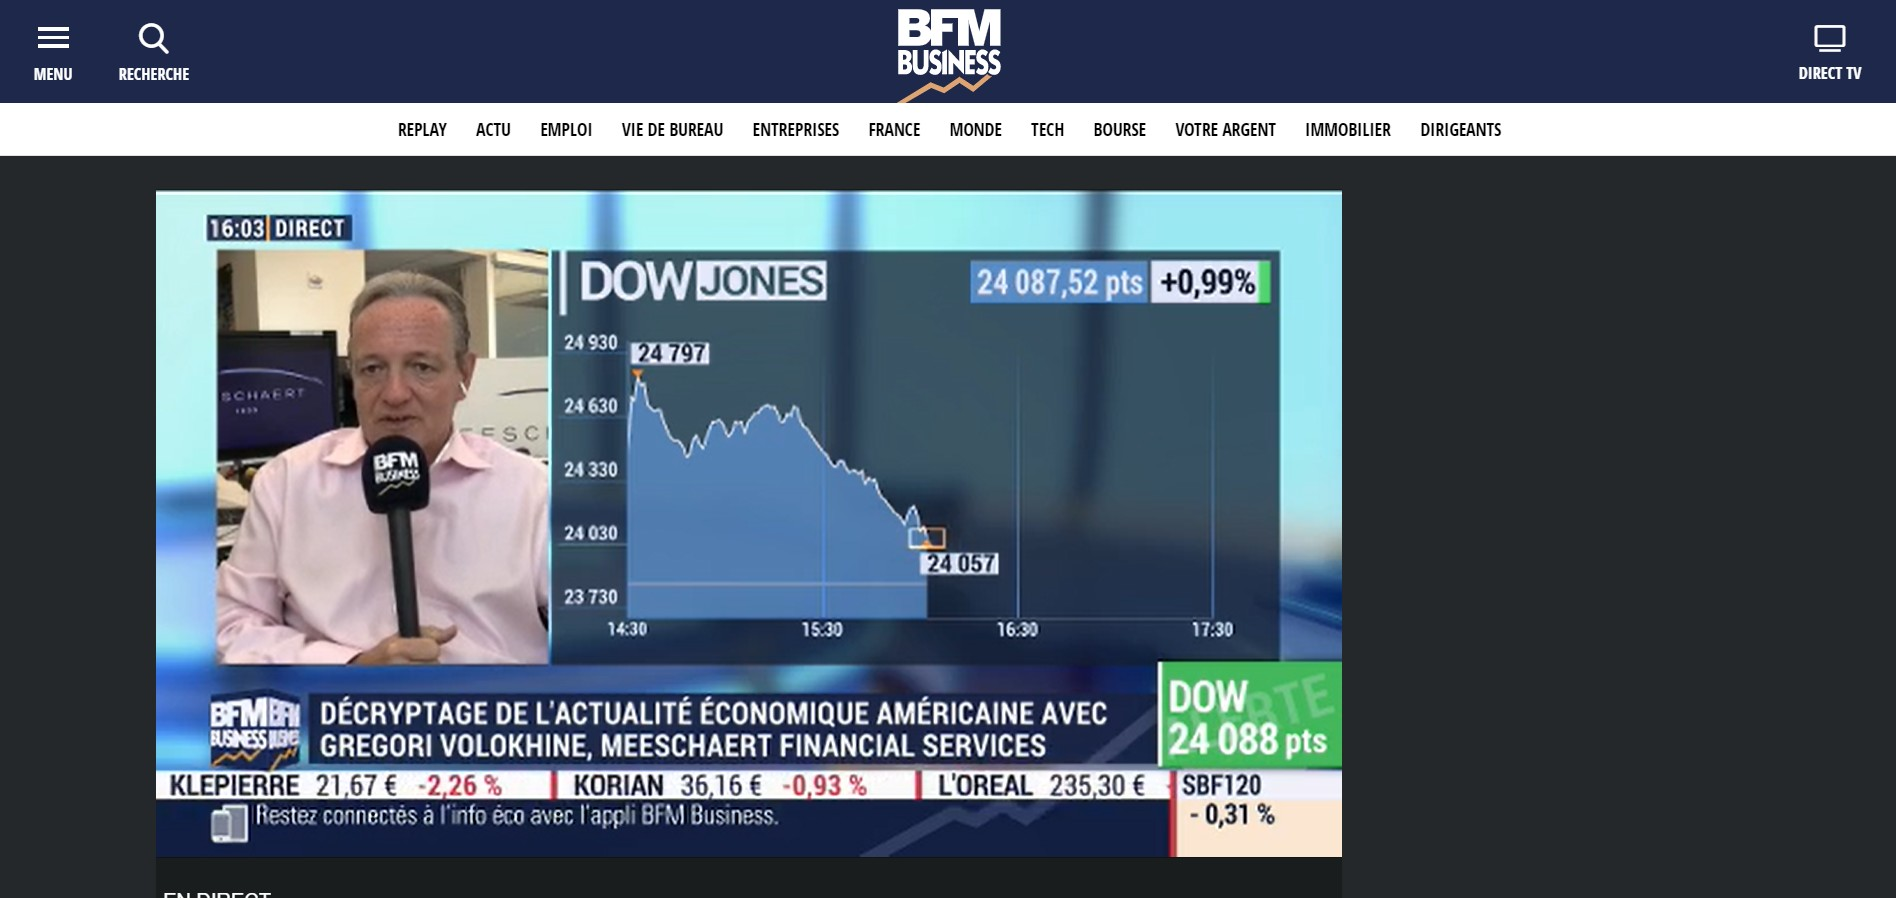 BFM Business live streaming